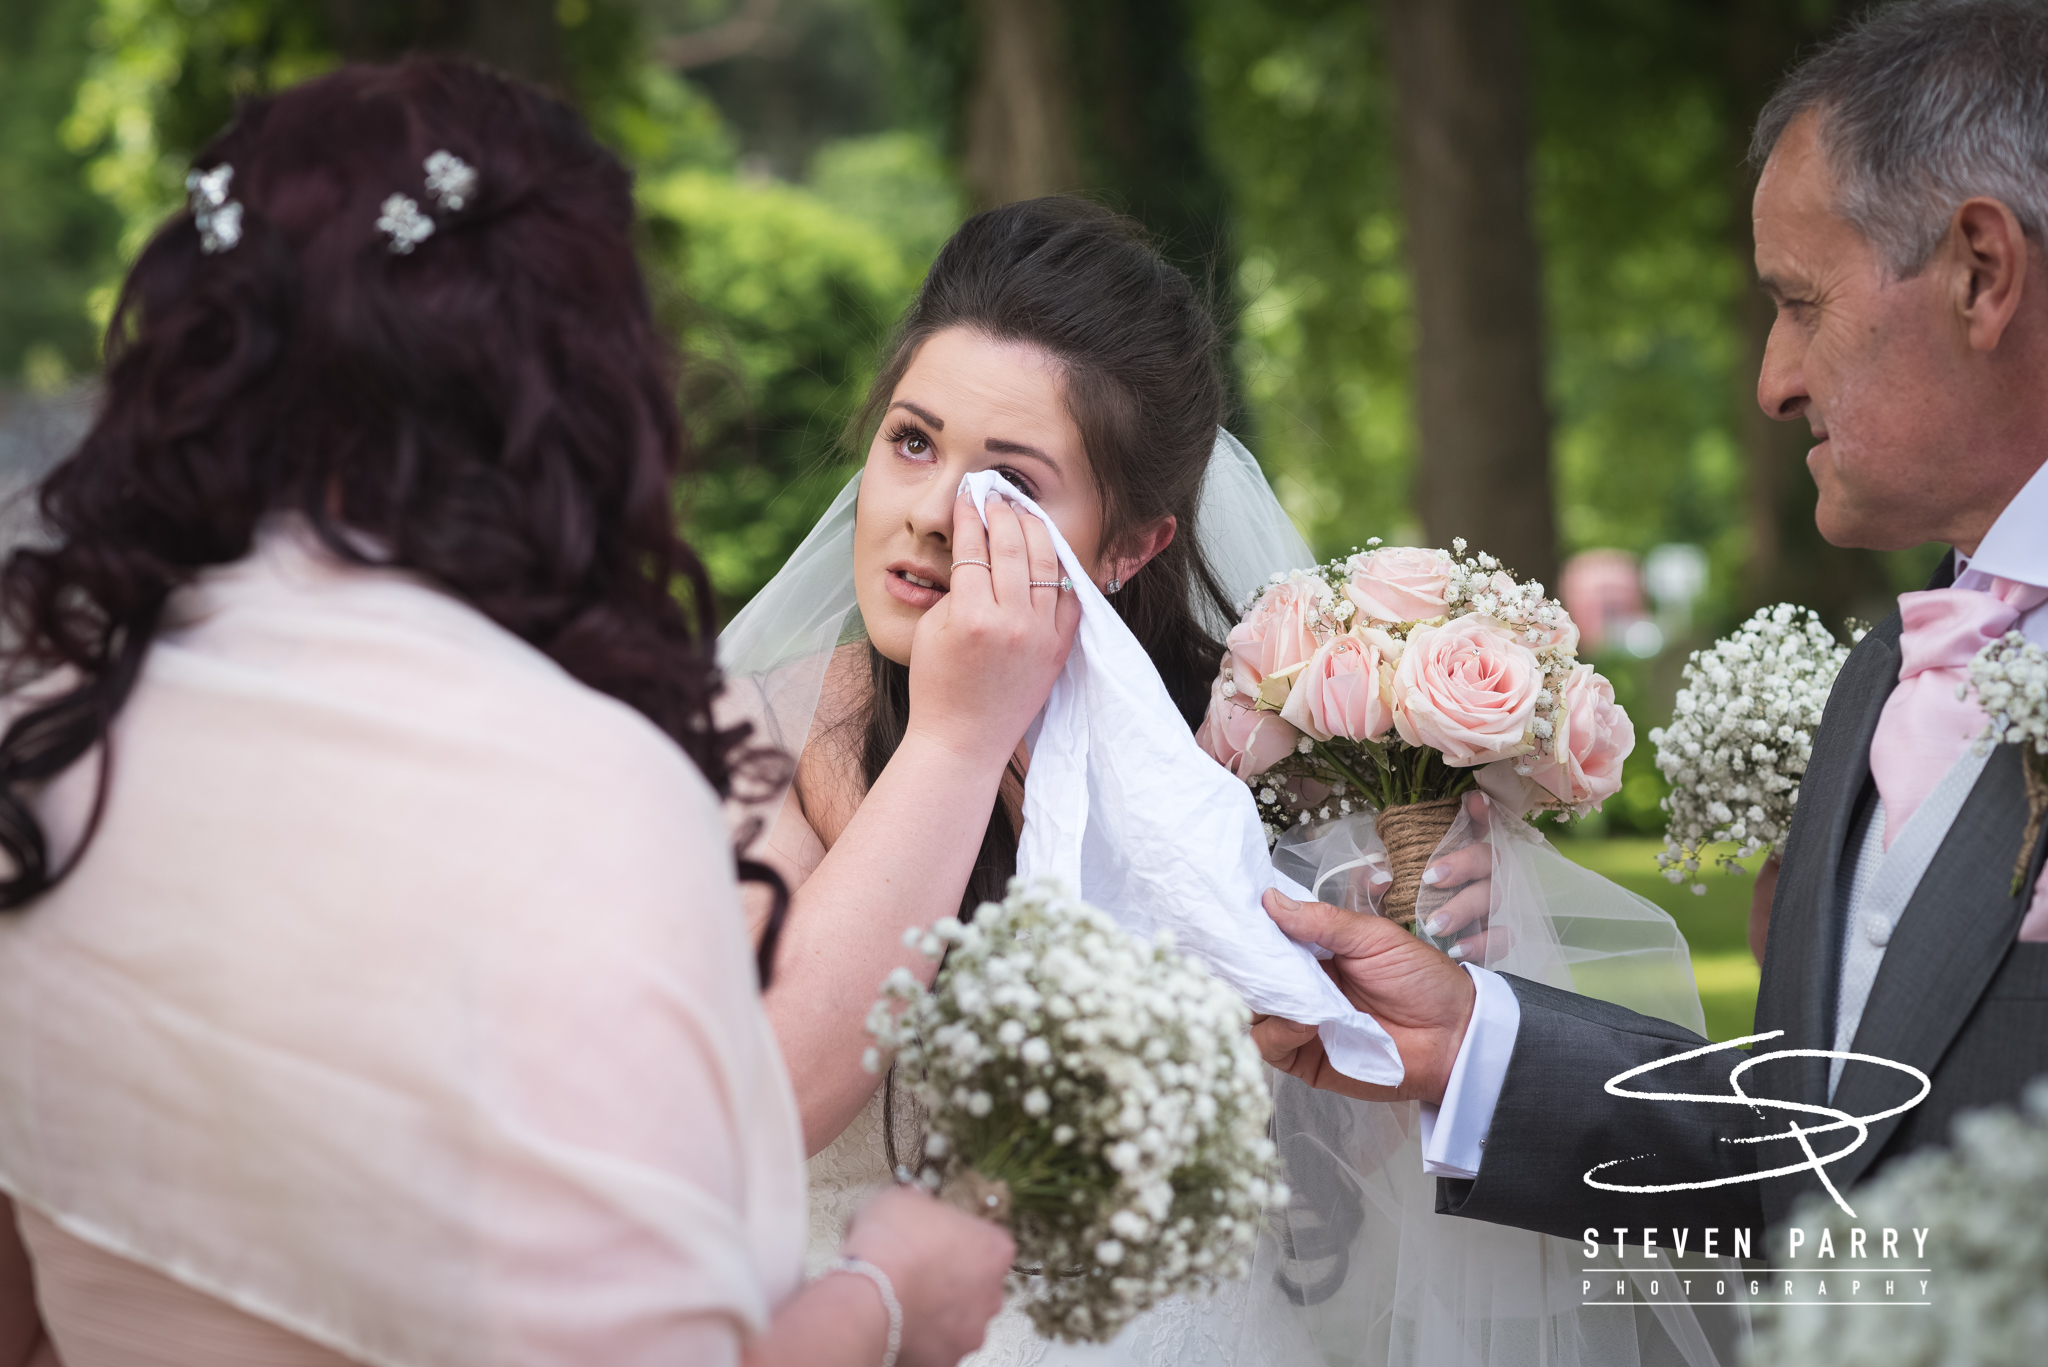 Emotional times at Jess & Ricci's amazing day.